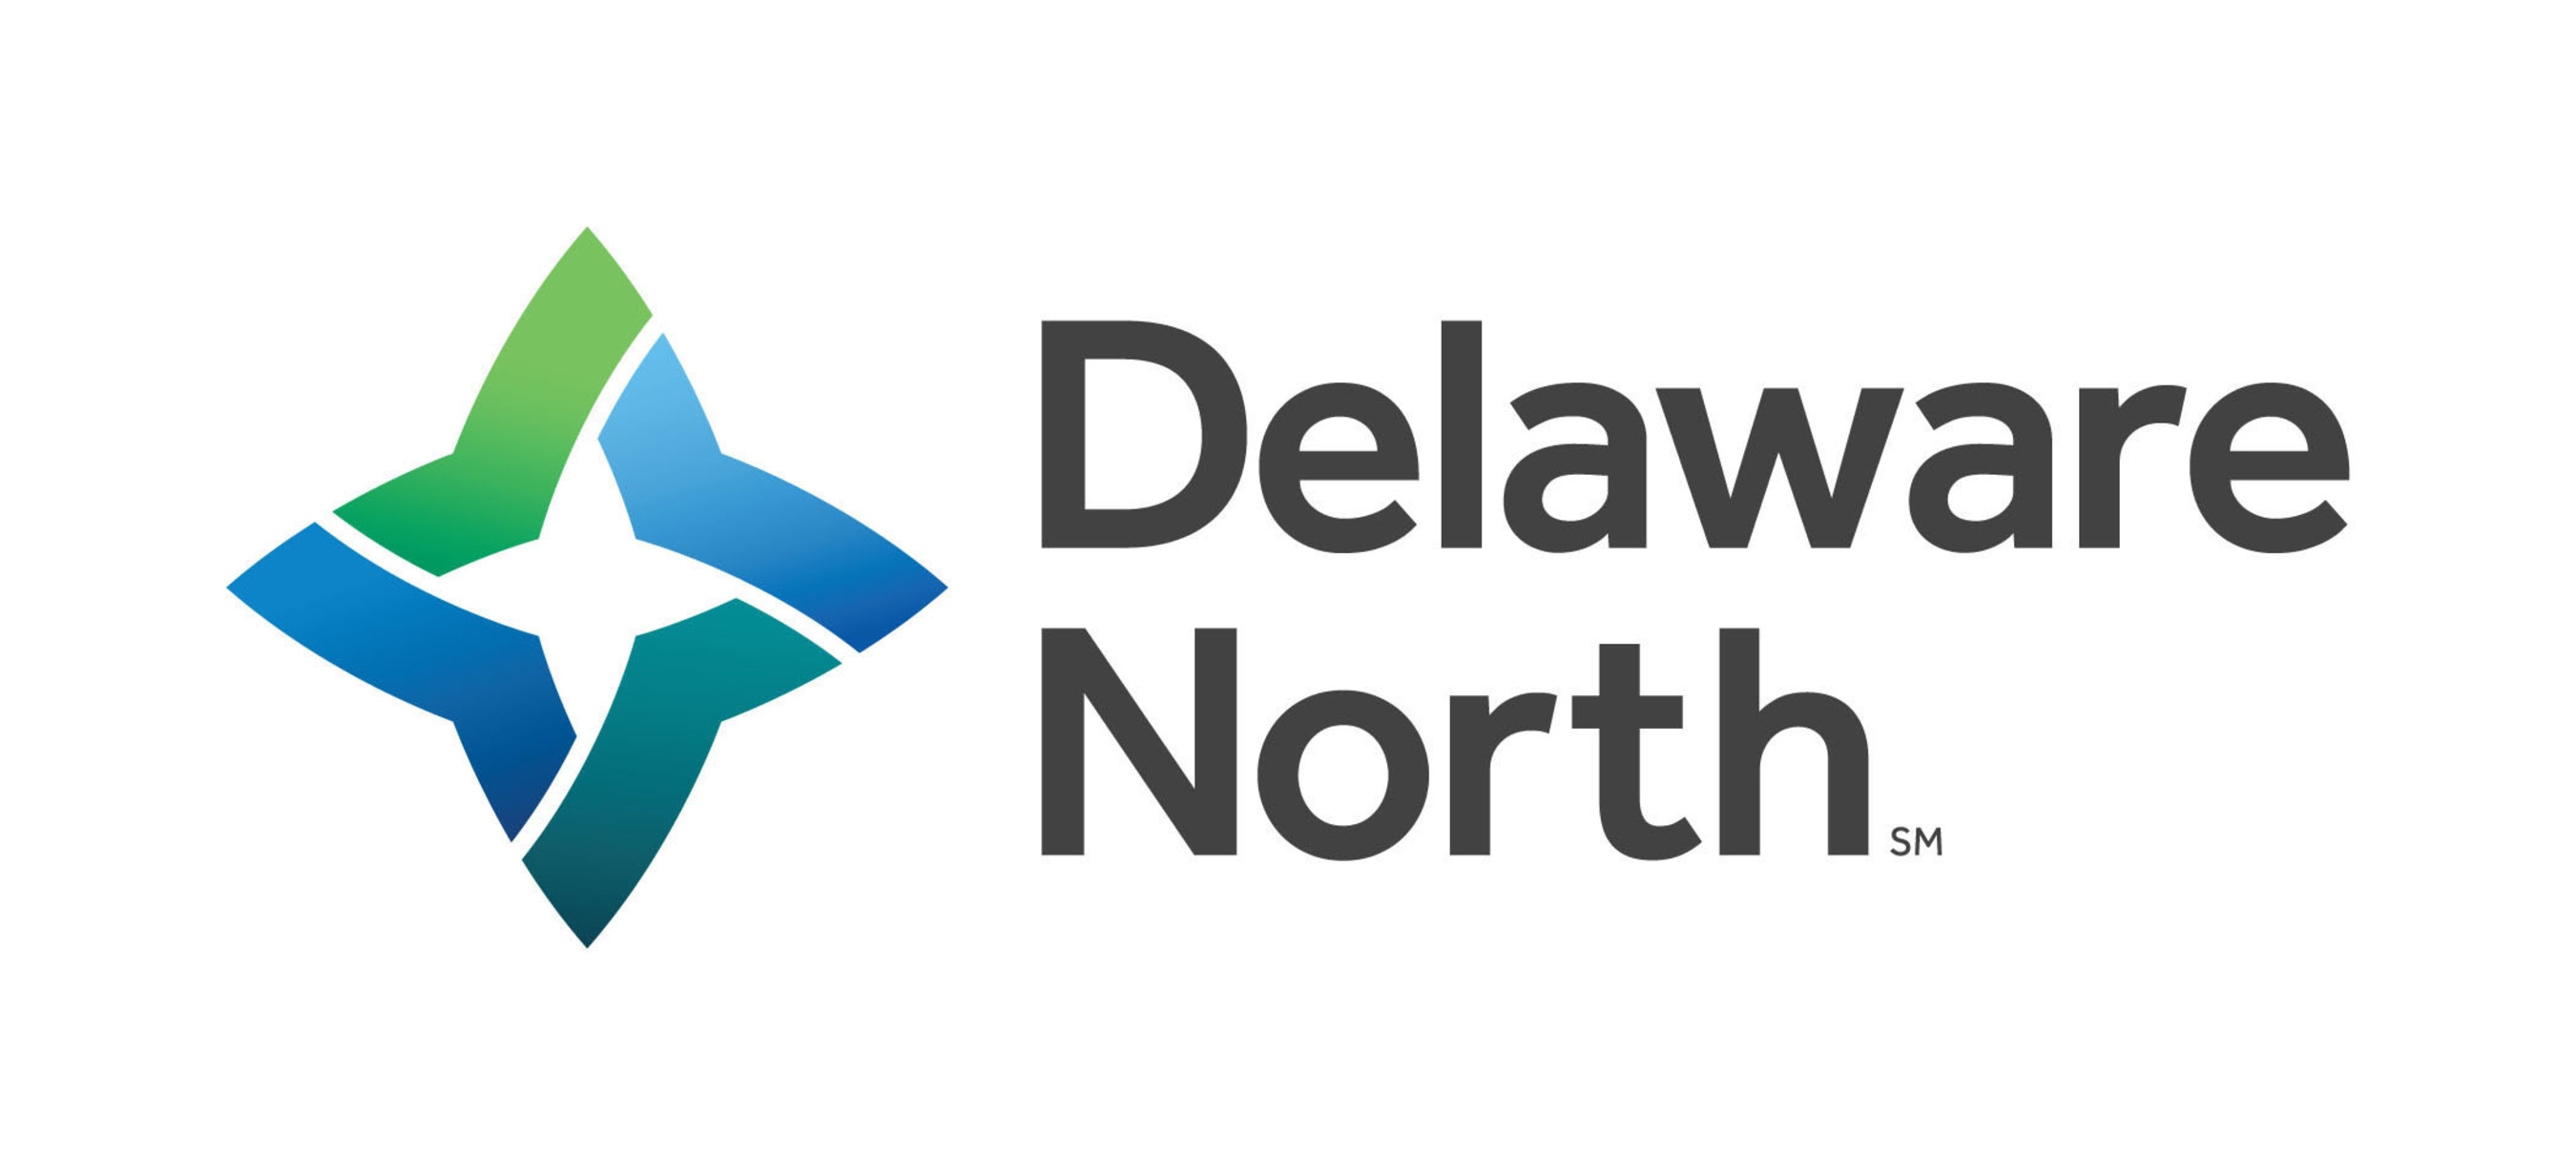 Delaware North acquires Illinois route gaming business GEM